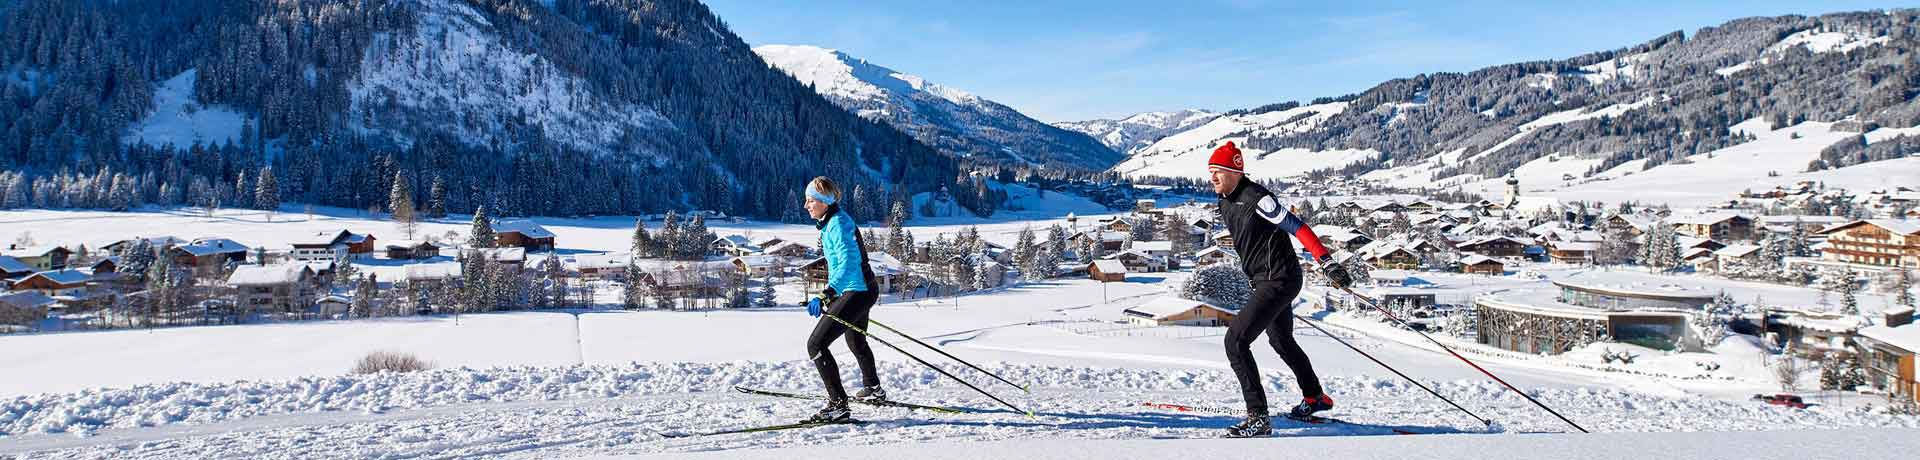 Cross-country skiing in the Tannheimer Tal, Tyrol